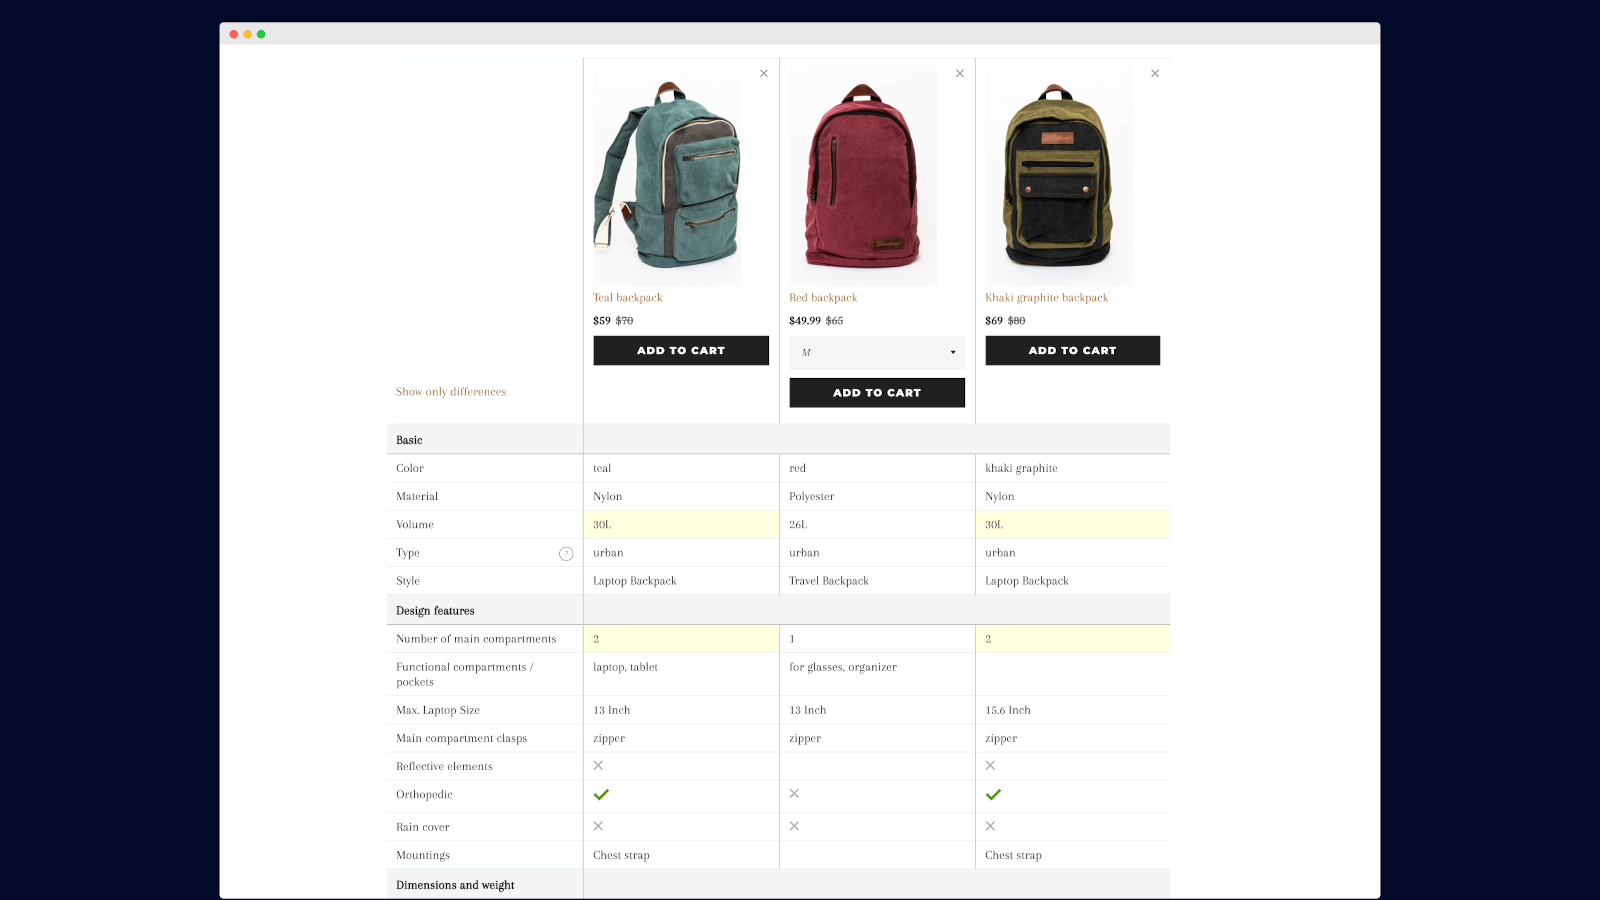 Product comparison table on desktop. Compare product by options